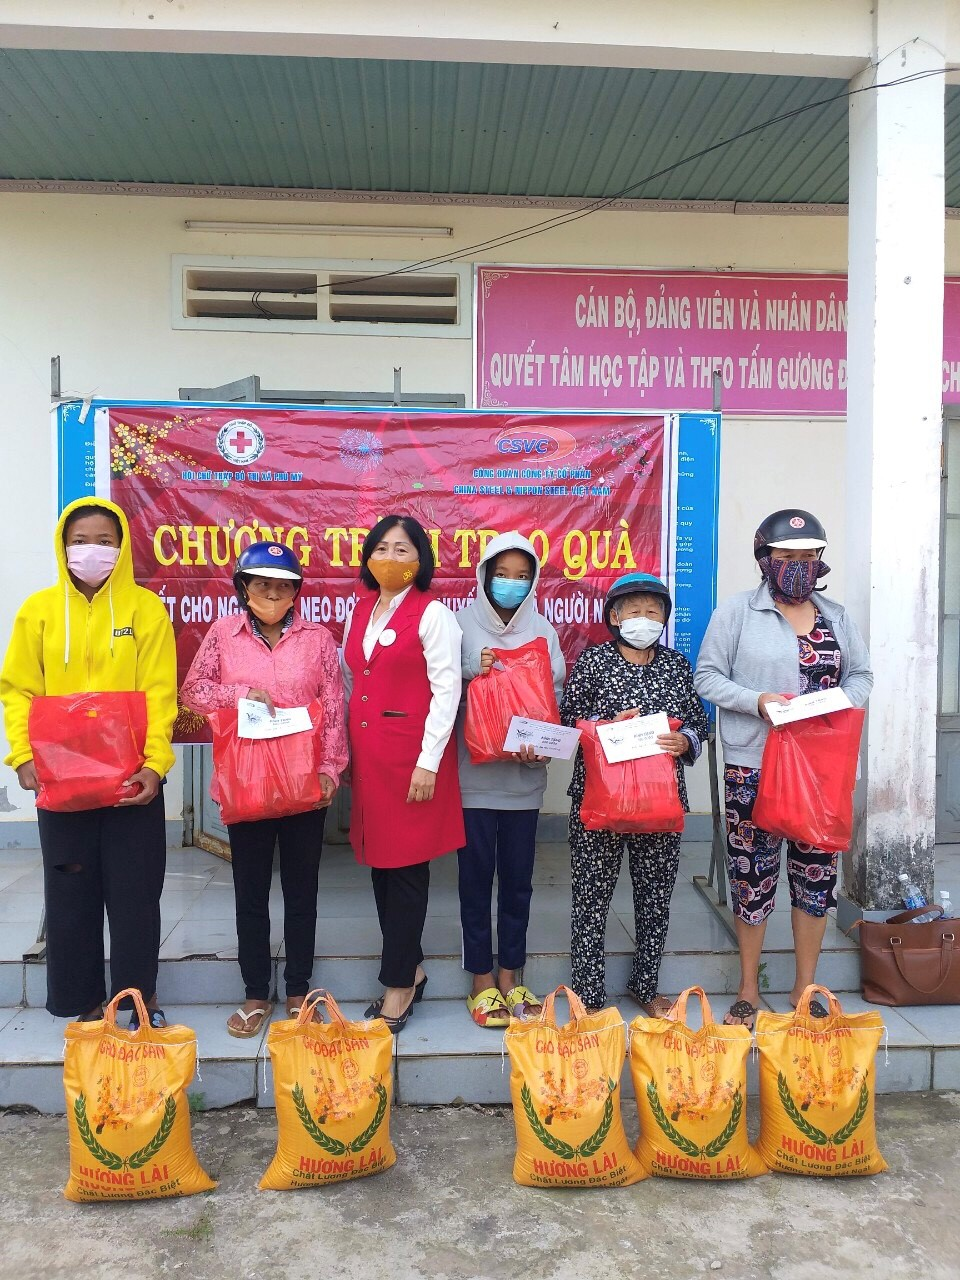 GIVING GIFTS FOR TO PEOPLE IN DIFFICULT CIRCUMSTANCES ON THE OCCASION OF 2021 LUNAR NEW YEAR